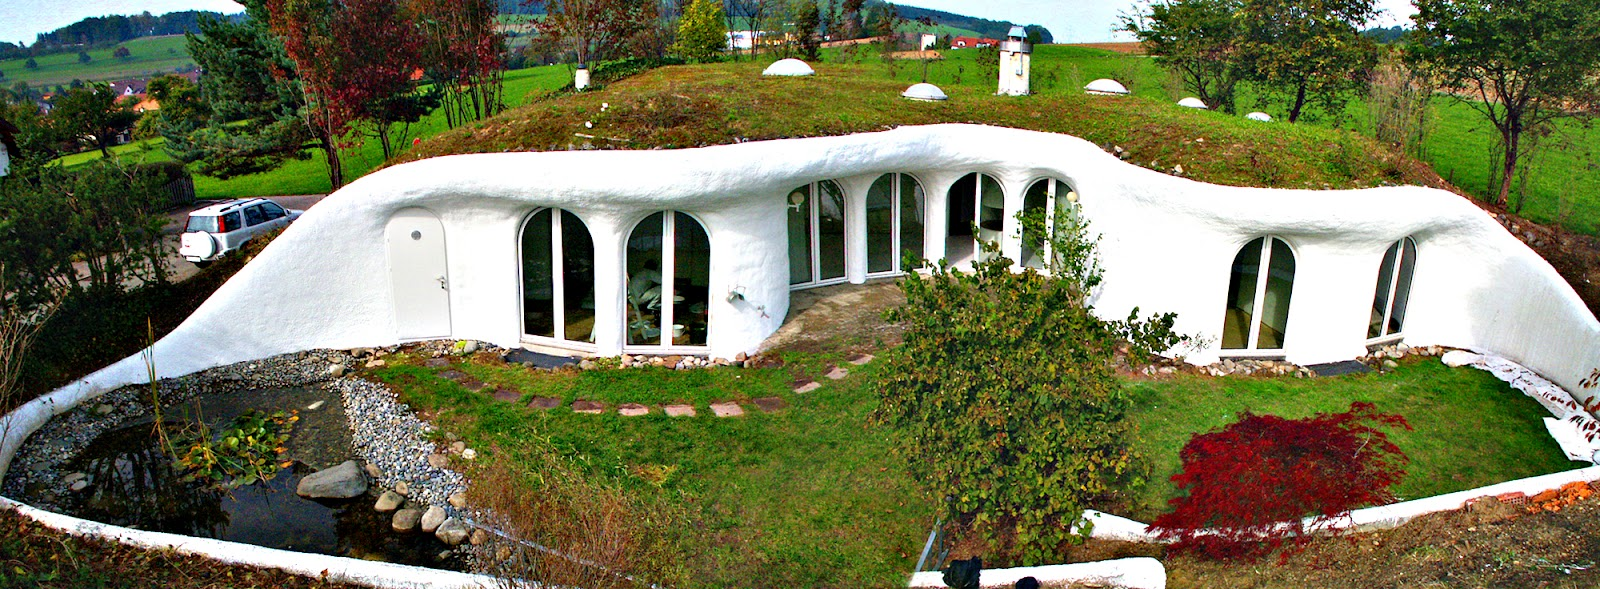 blogger com 27 Absolutely Stunning Underground Homes